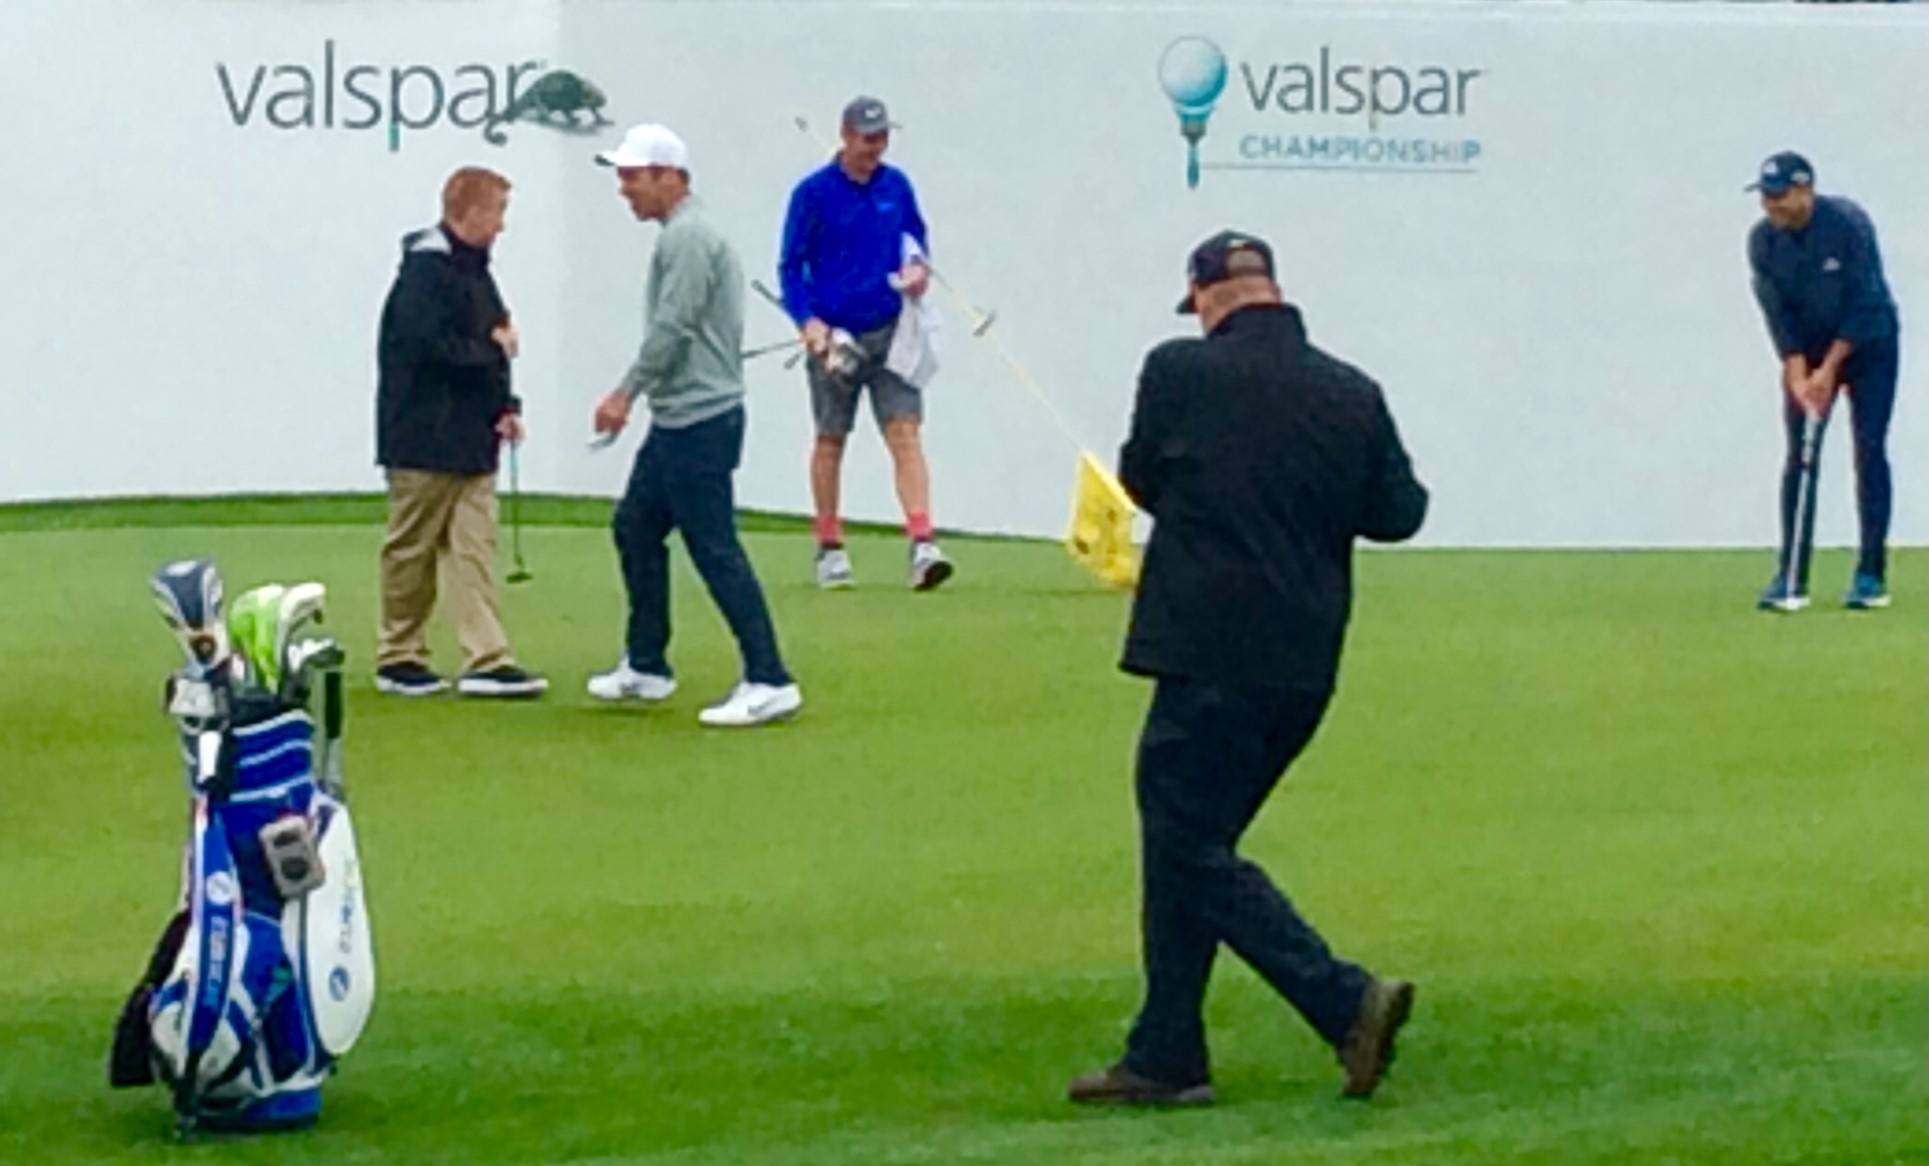 Ronan, Paul Casey and Sergio Garcia on the 18th green (March 2019)